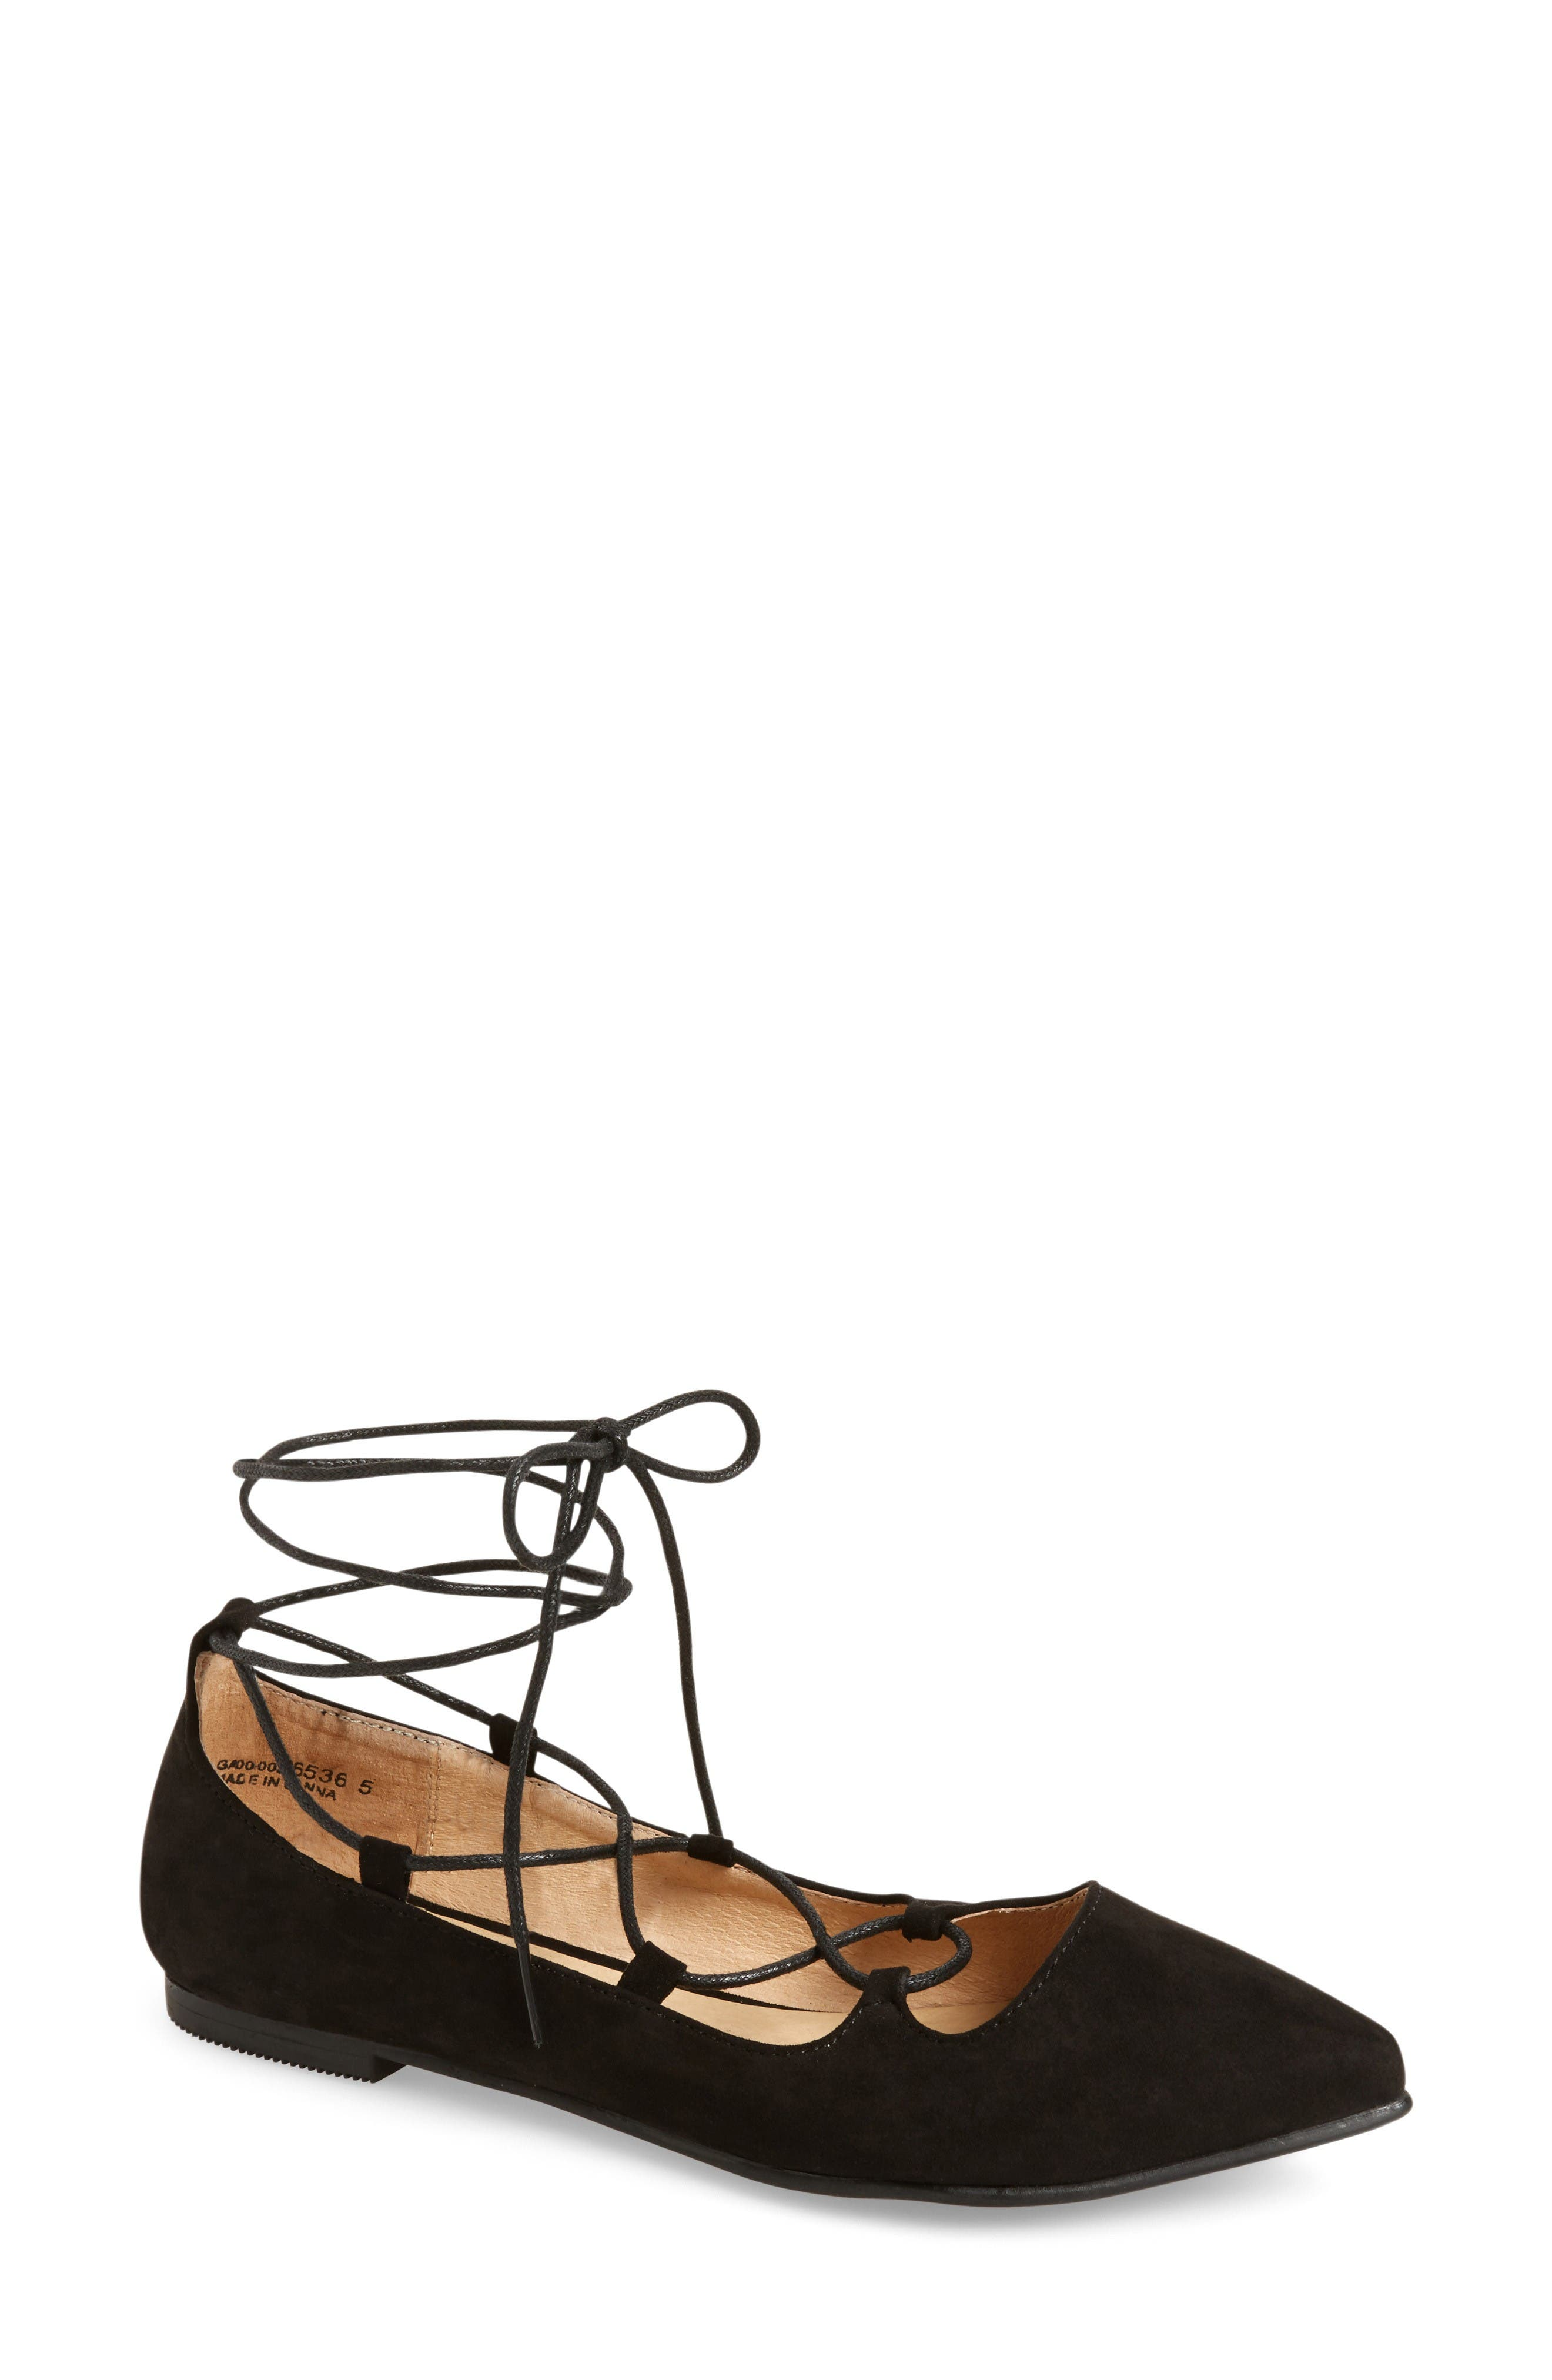 Chinese Laundry Endless Summer Ghillie Flat (Women)